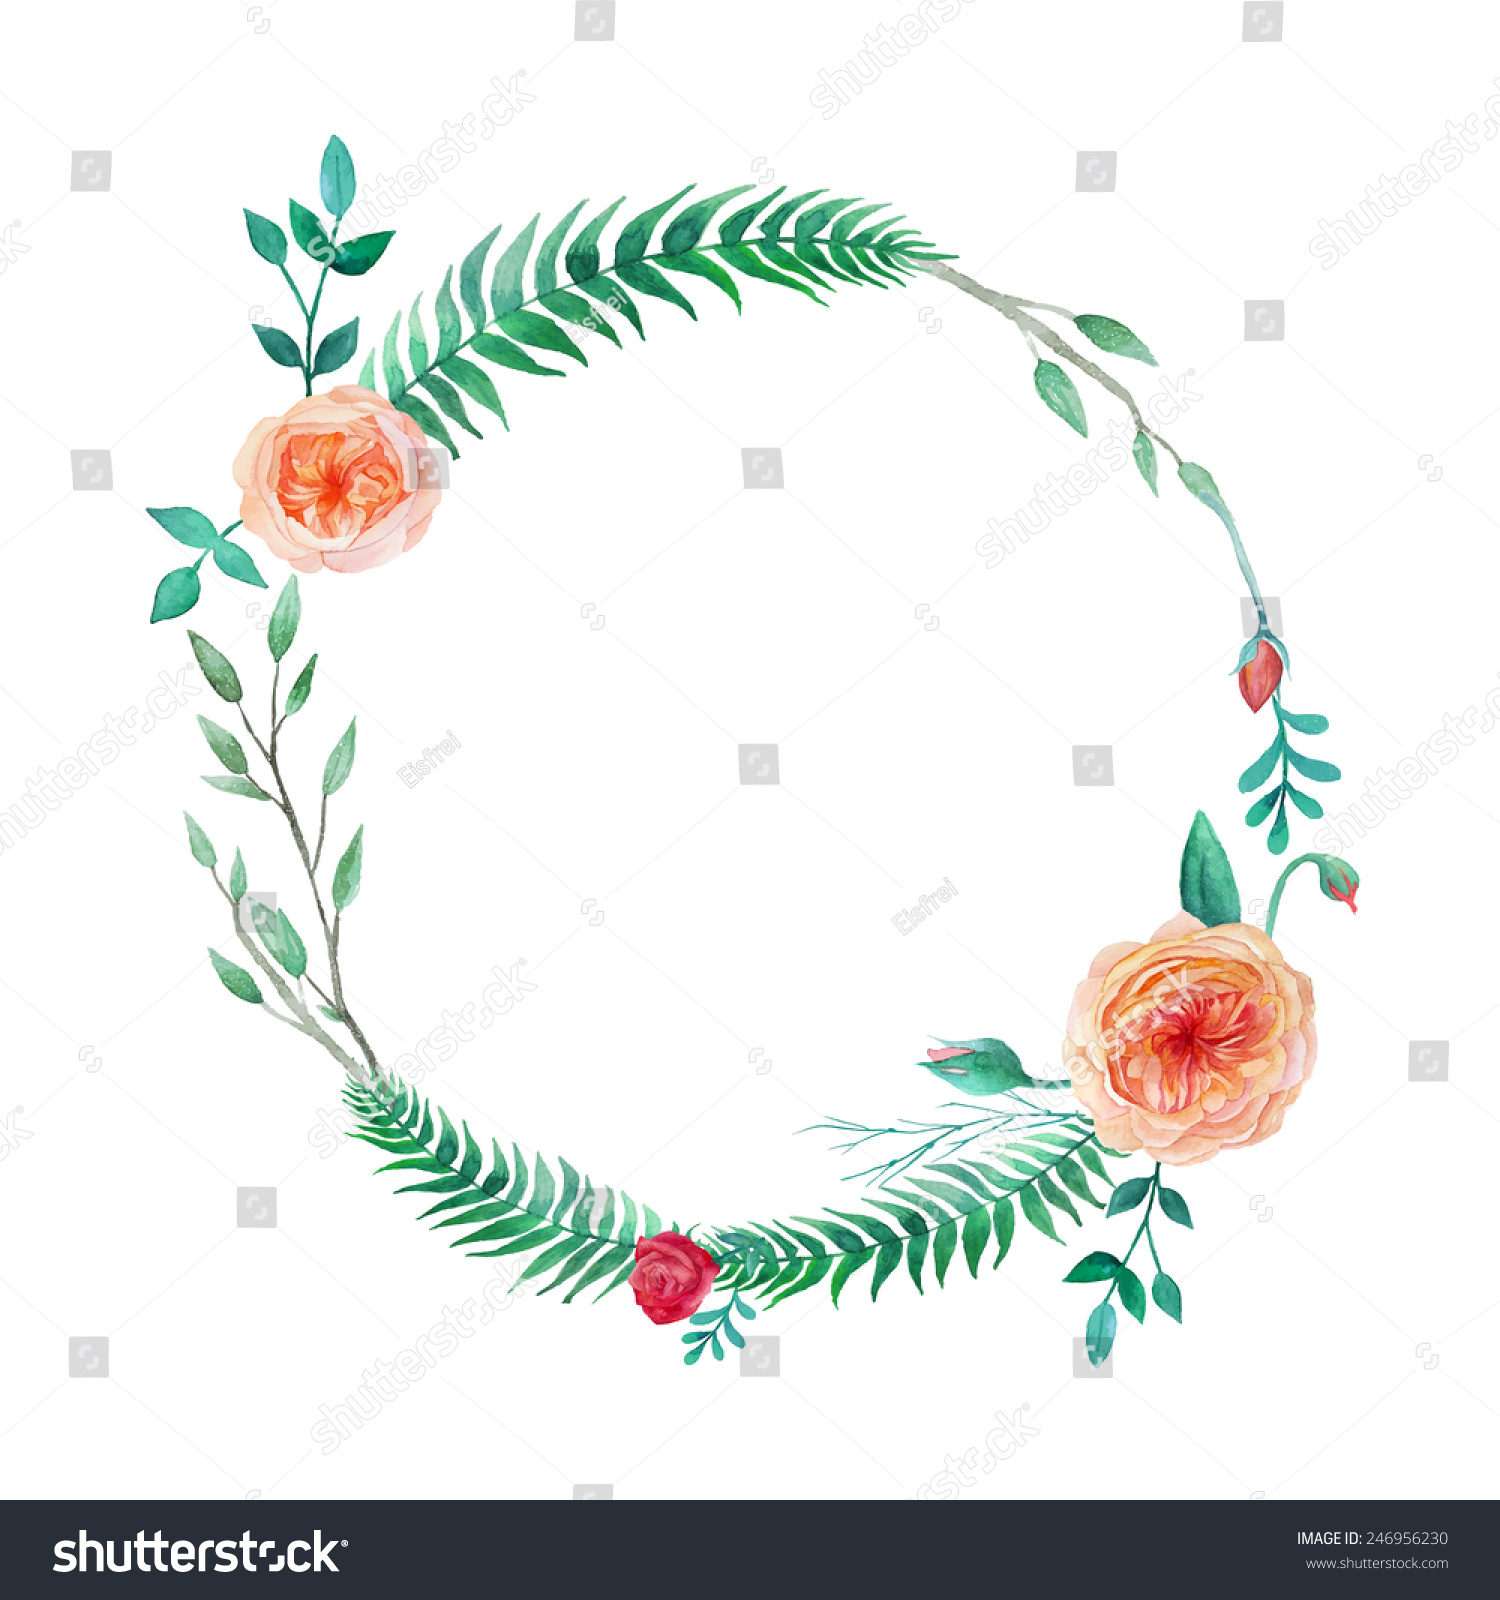 Round frame with decorative branch vector illustration stock -  Vectors Illustrations Footage Music Watercolor Garden Roses Wreath Round Frame With English Roses Plants Fern And Branches